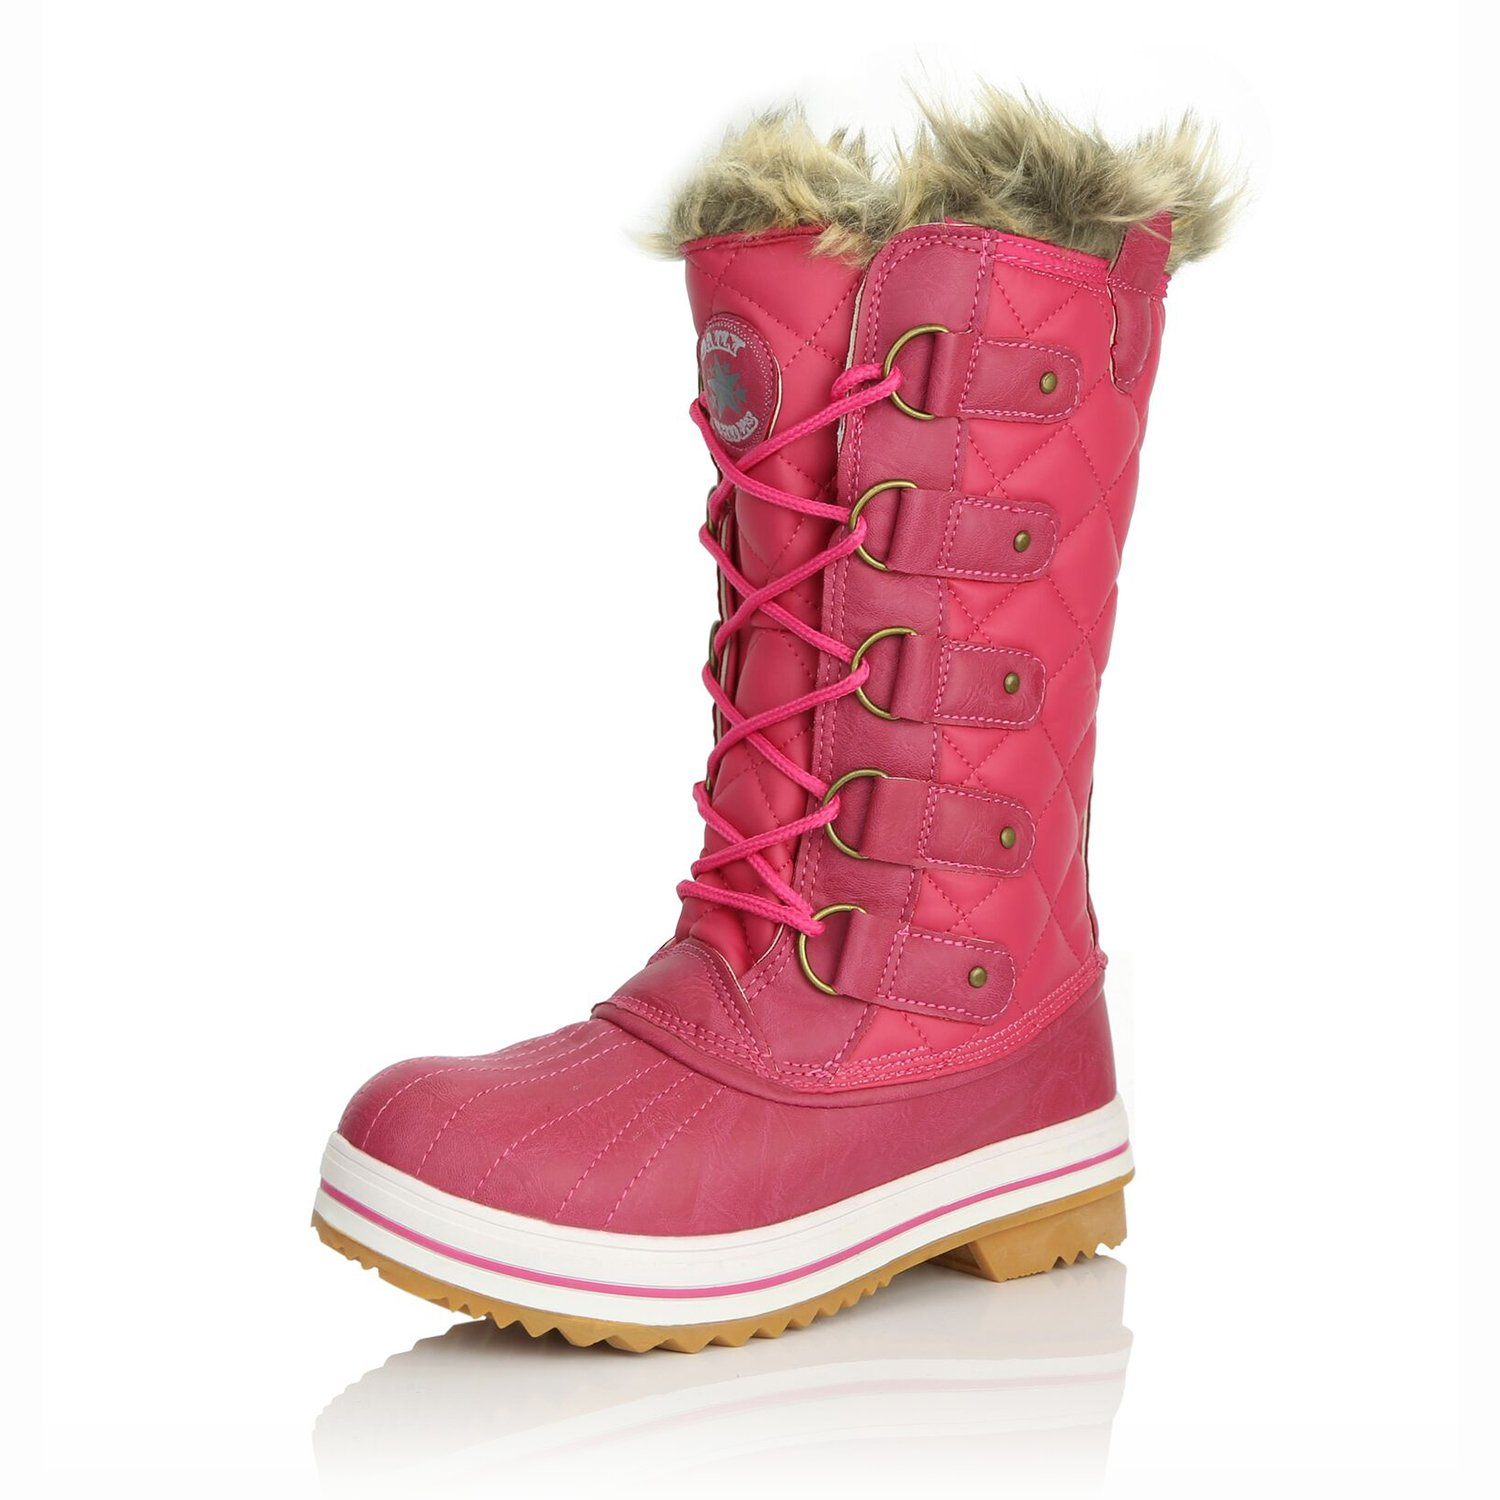 DailyShoes Women's Lace Up Knee High Artic Warm Fur Water Resistant Eskimo Snow Boots, 9